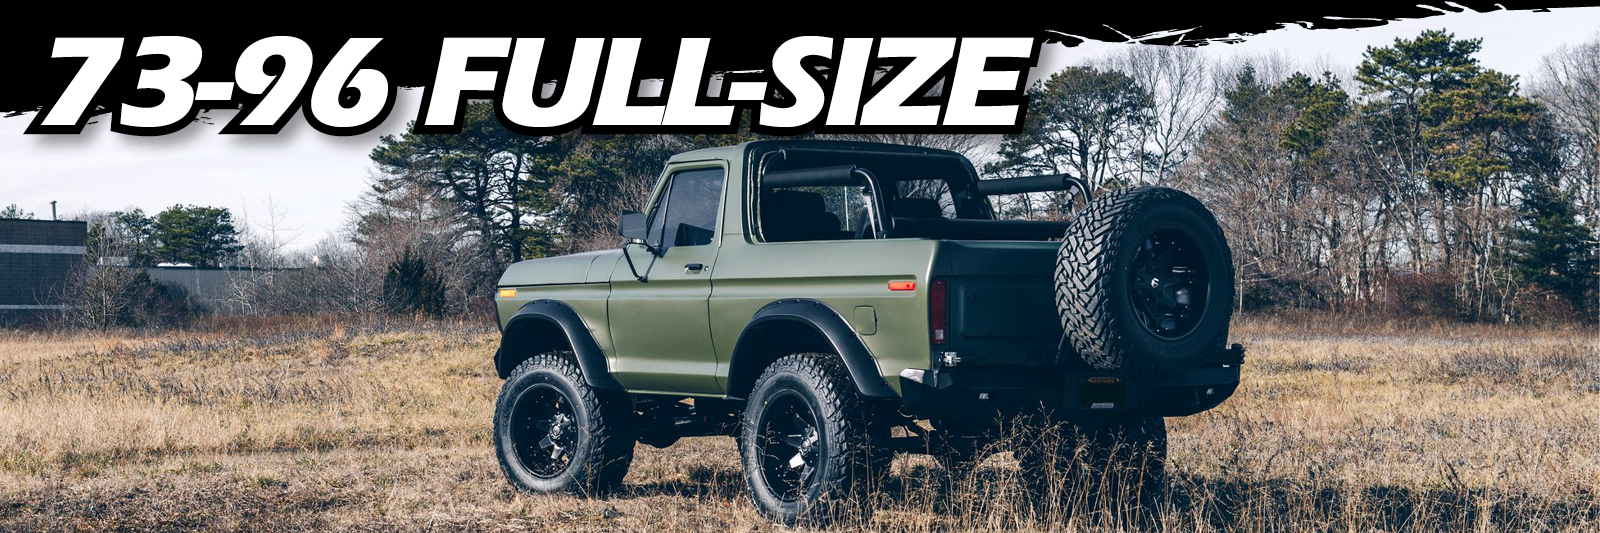 hight resolution of 78 79 full size ford bronco parts u0026 accessories wild horses73 96 full size bronco